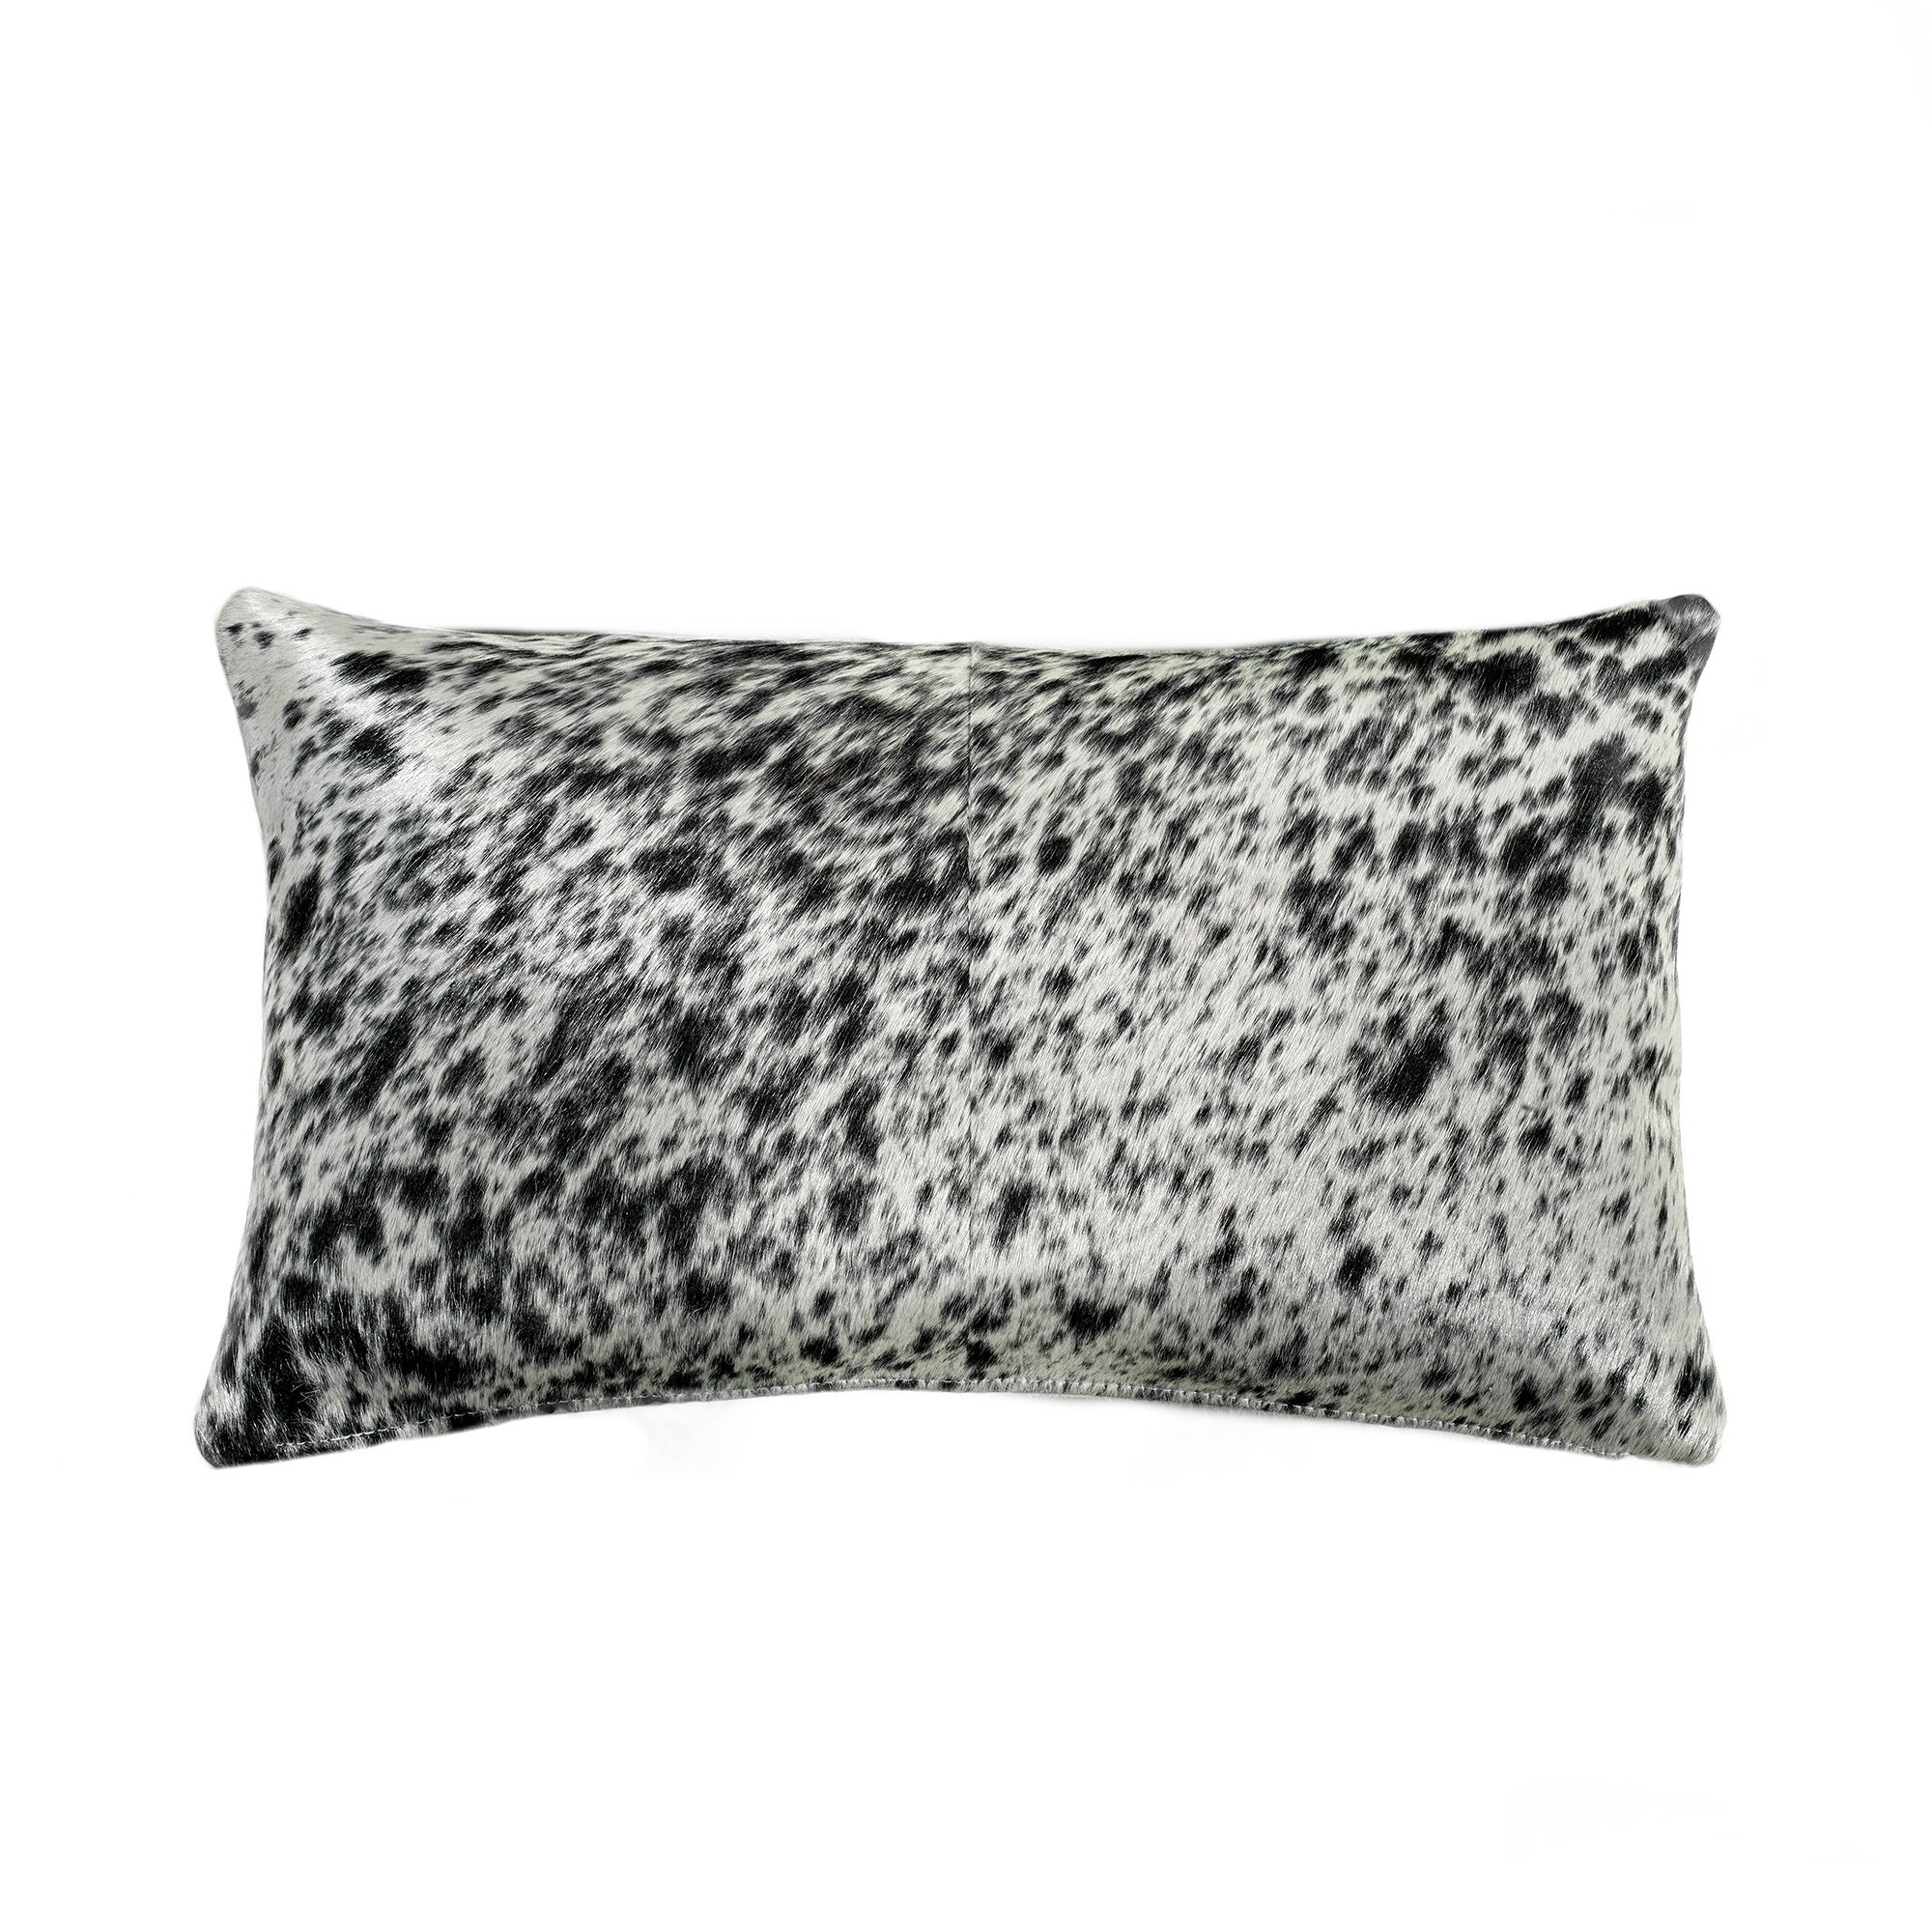 Saddlemans Salt And Pepper Rectangular Leather Suede Pillow Cover And Insert Perigold